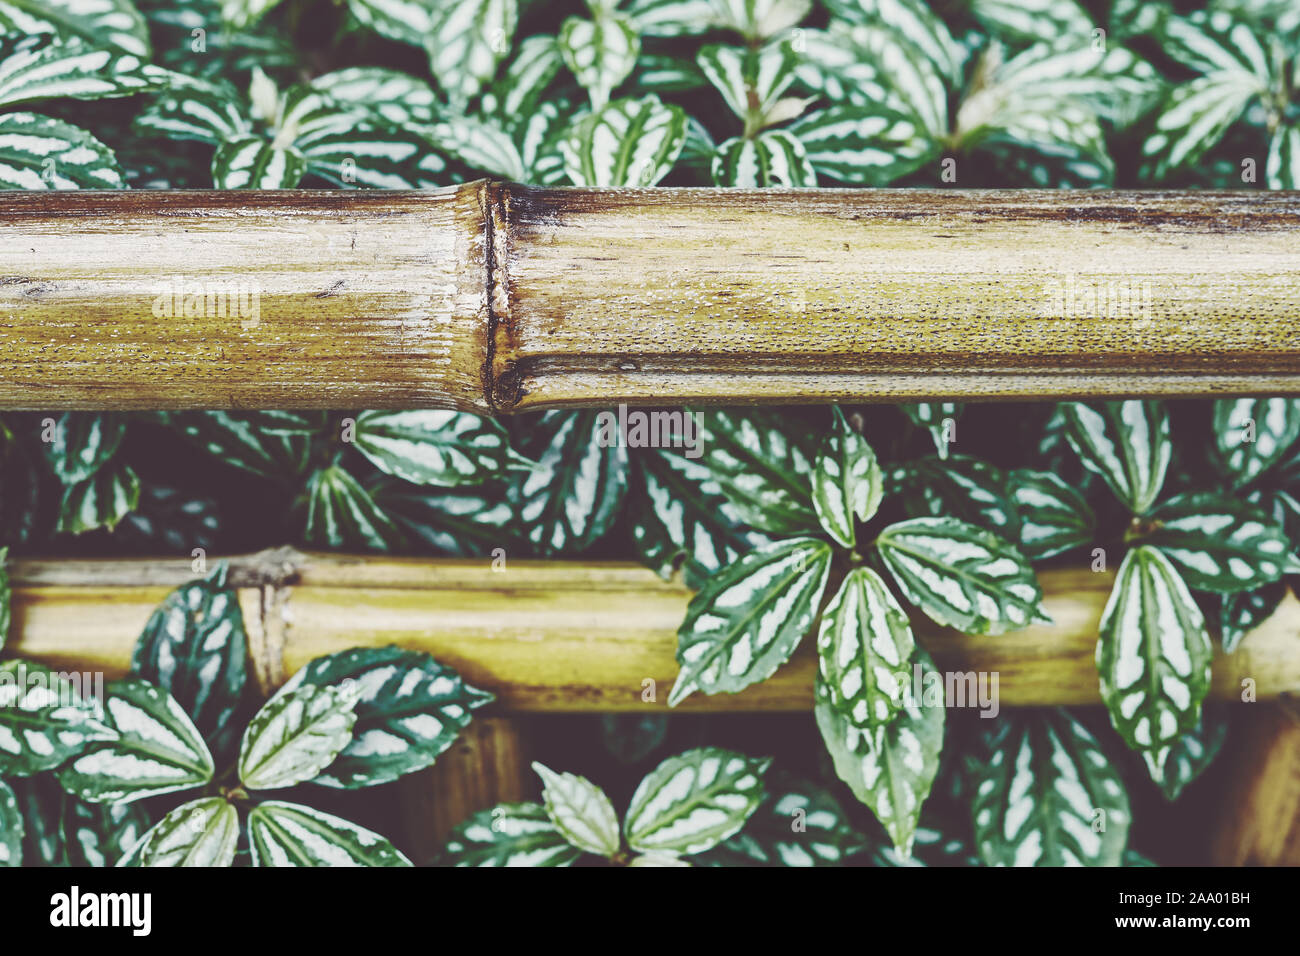 decorative gate in bamboo fence stock image image of.htm bamboo fence garden stock photos   bamboo fence garden stock  bamboo fence garden stock photos